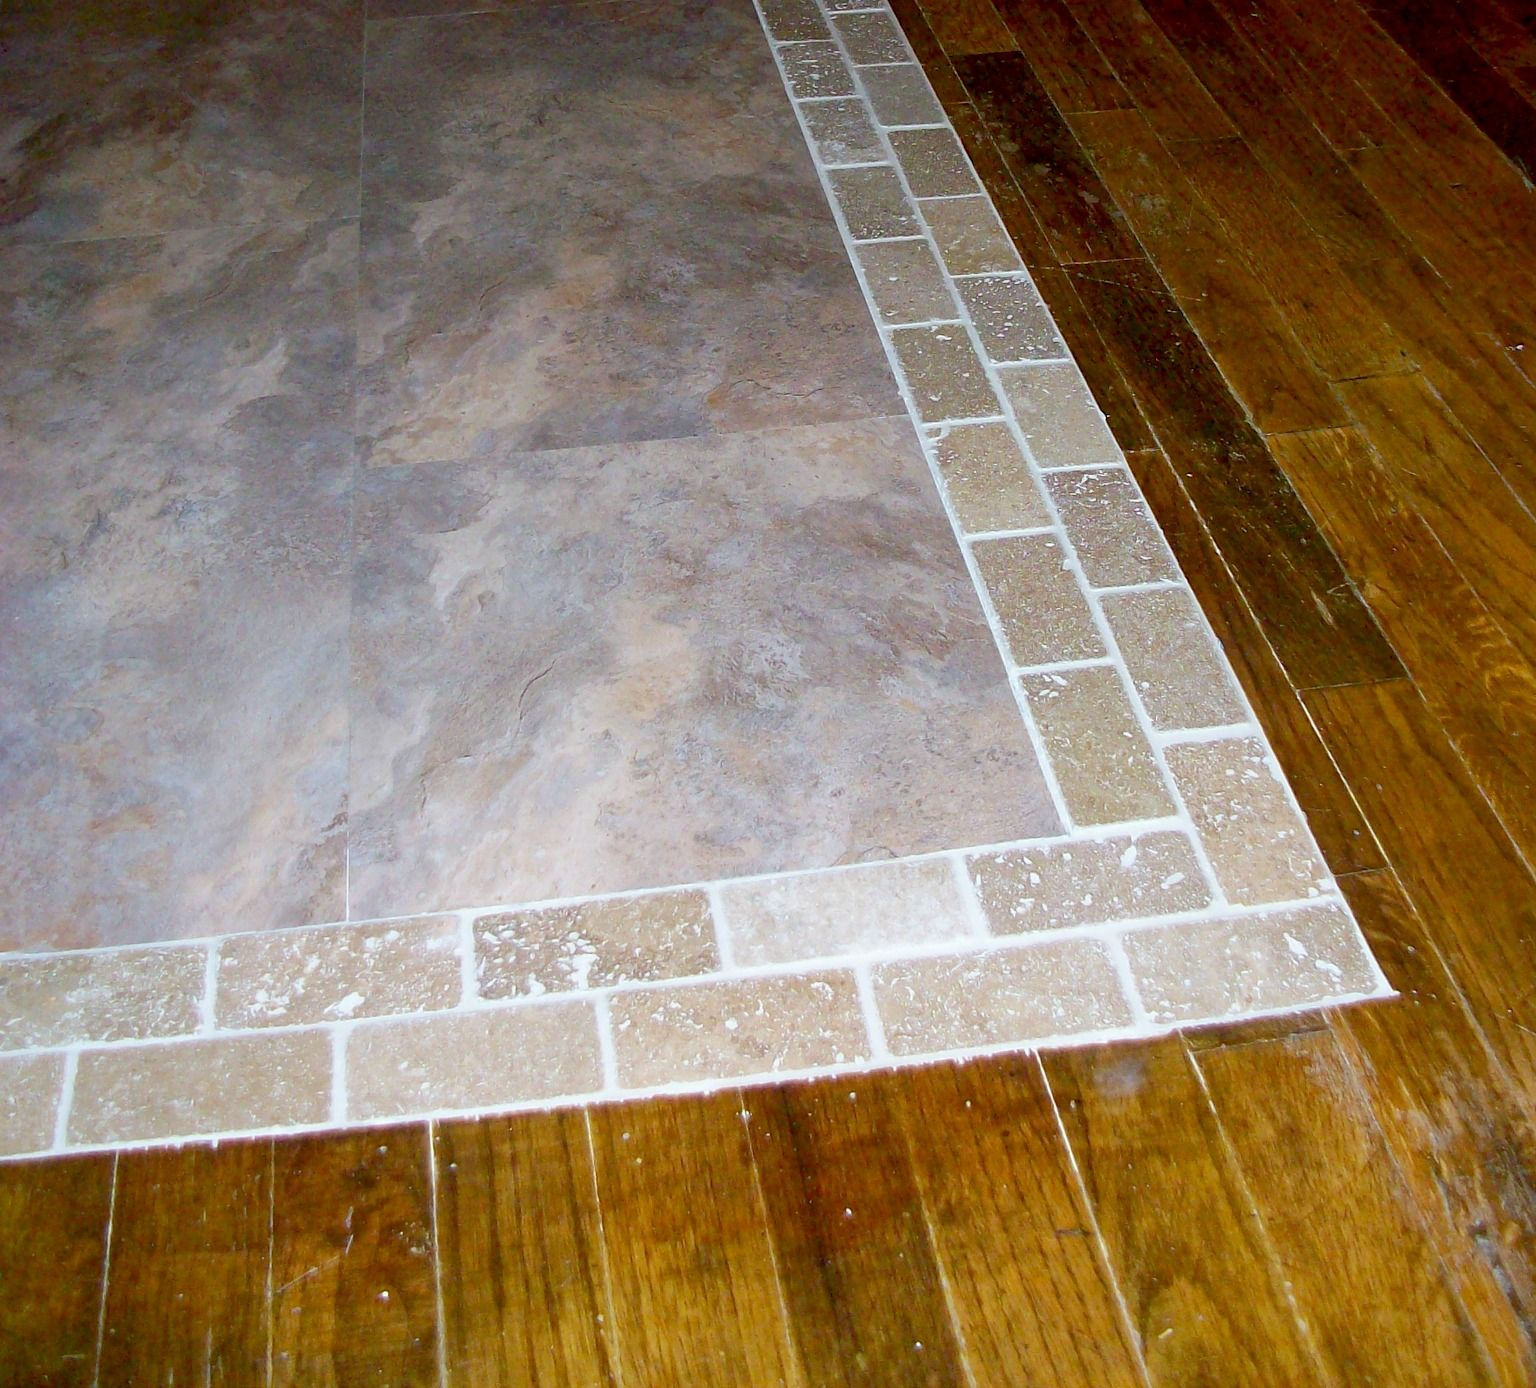 floor transition from hardwood to tile - Google Search | for erica ...